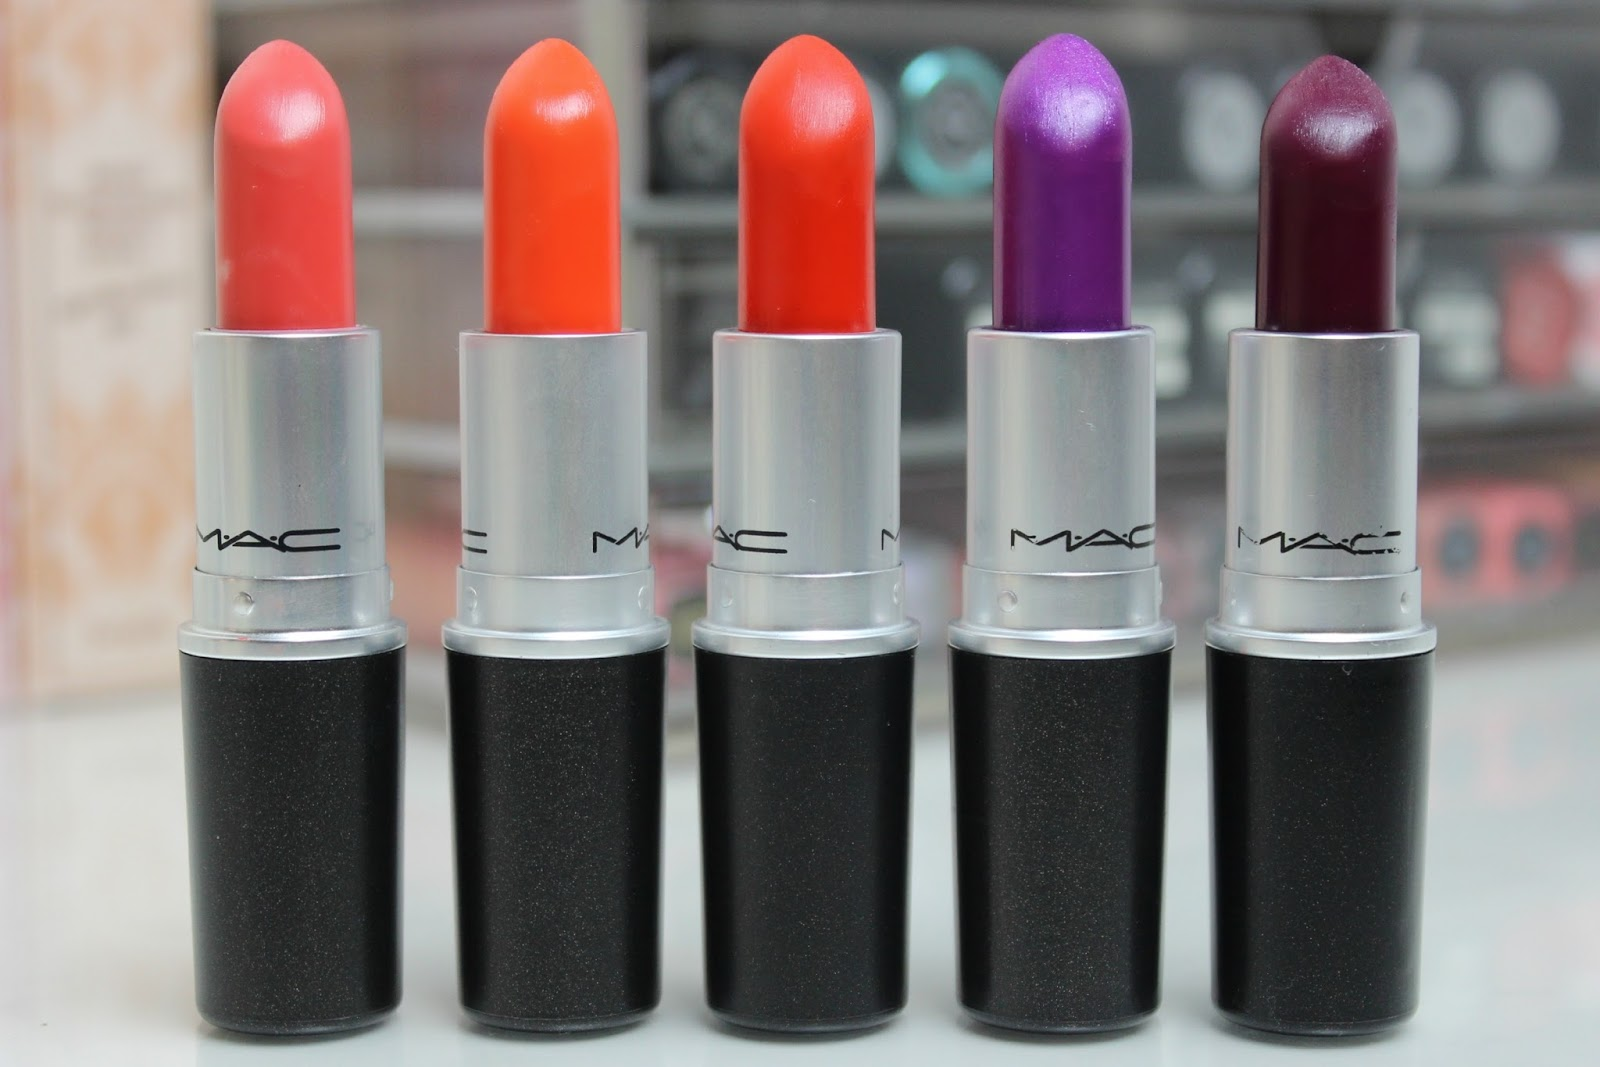 A picture of MAC lipsticks in shades Vegas Volt, Morange, Lady Danger, Violetta and Rebel